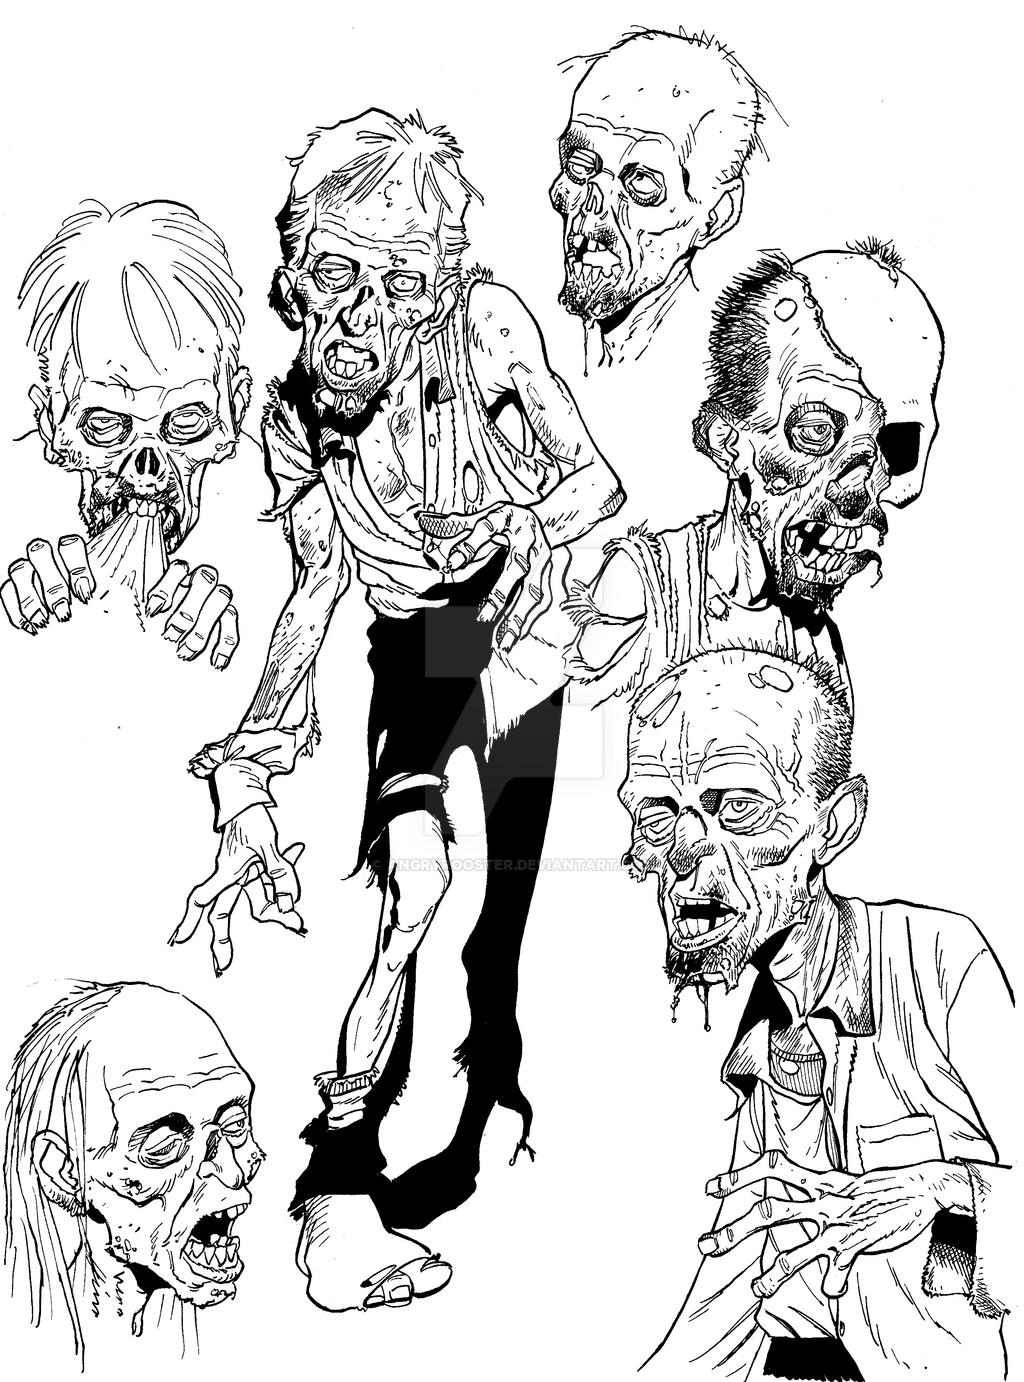 Zombie sketch stuff by angryrooster on DeviantArt